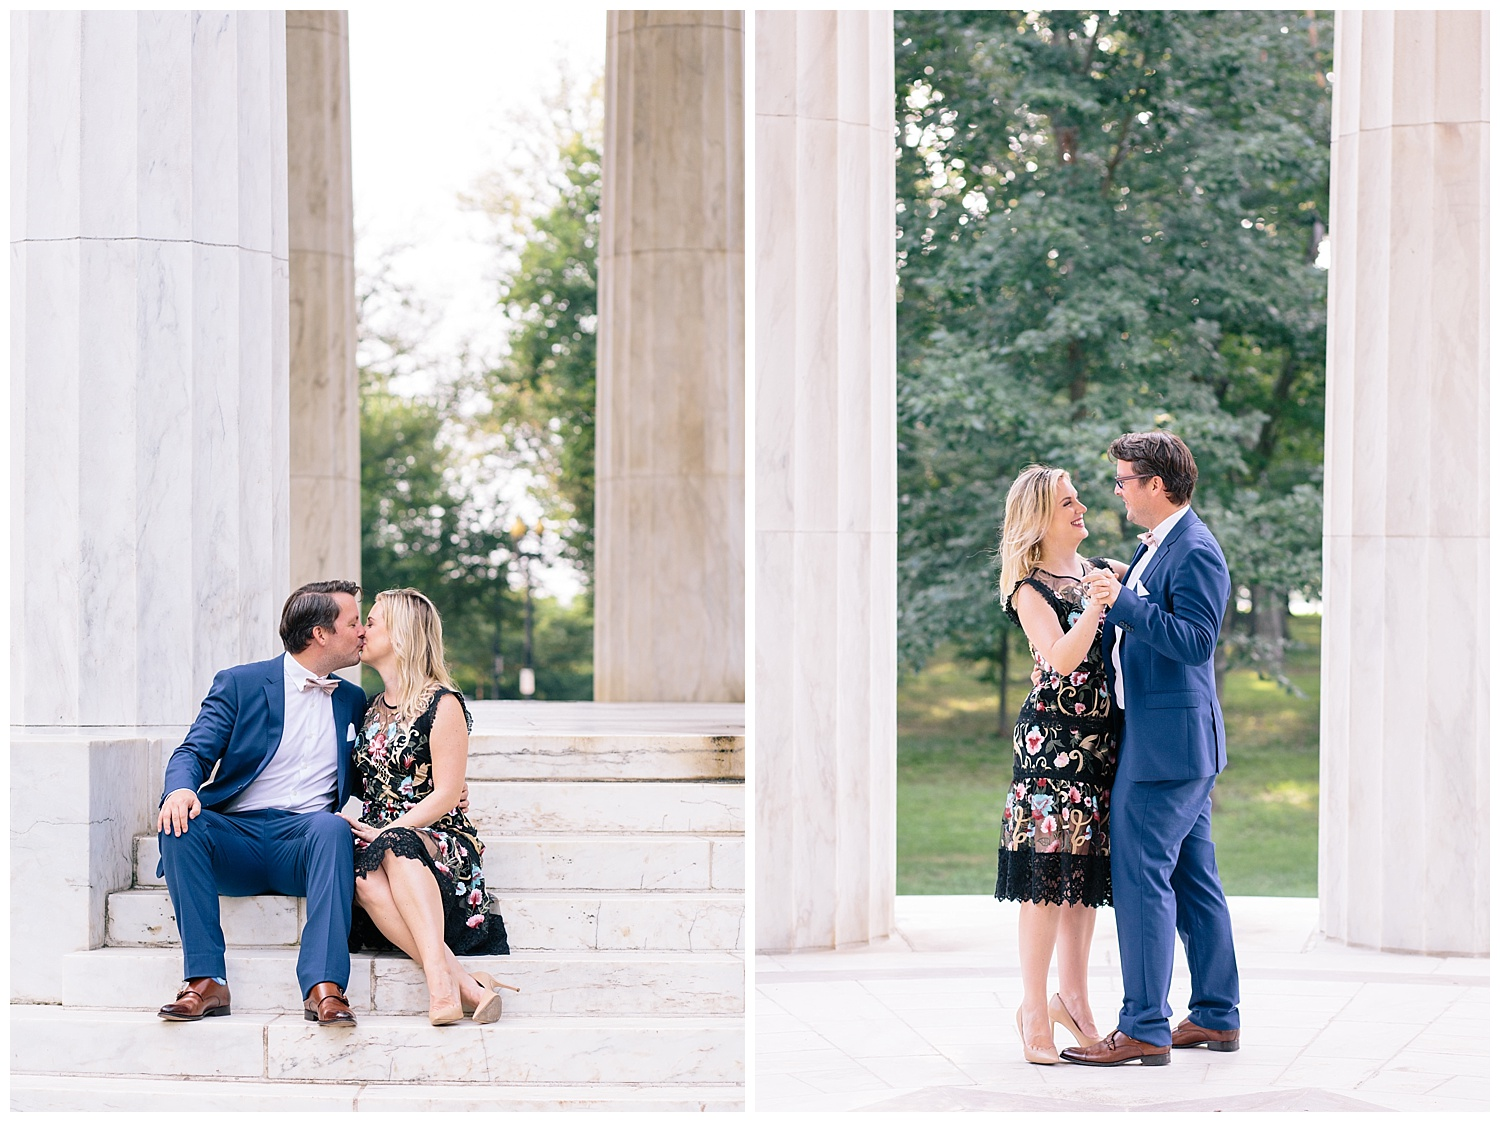 emily-belson-photography-washington-dc-engagement-emily-john-12.jpg